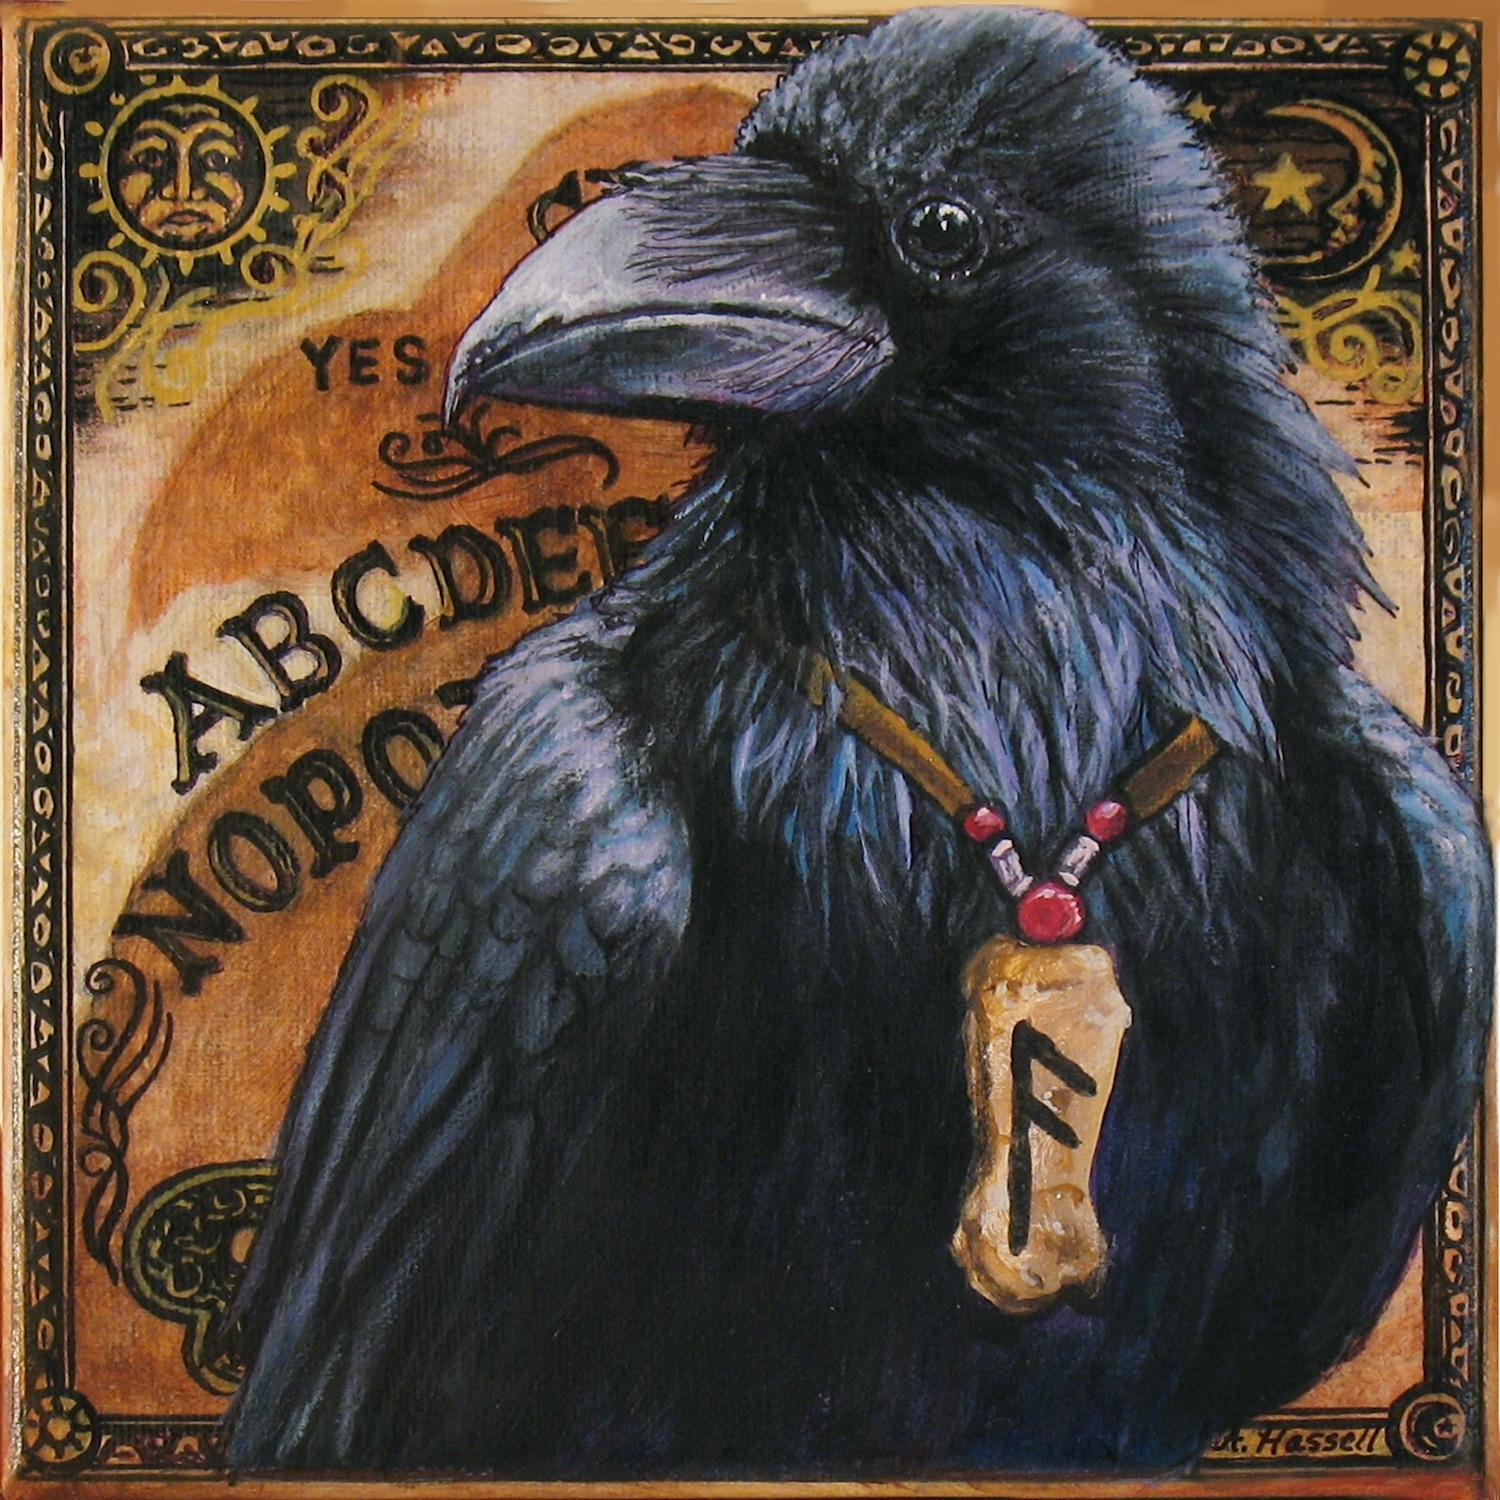 Mystic Raven Artwork by Annette Hassell